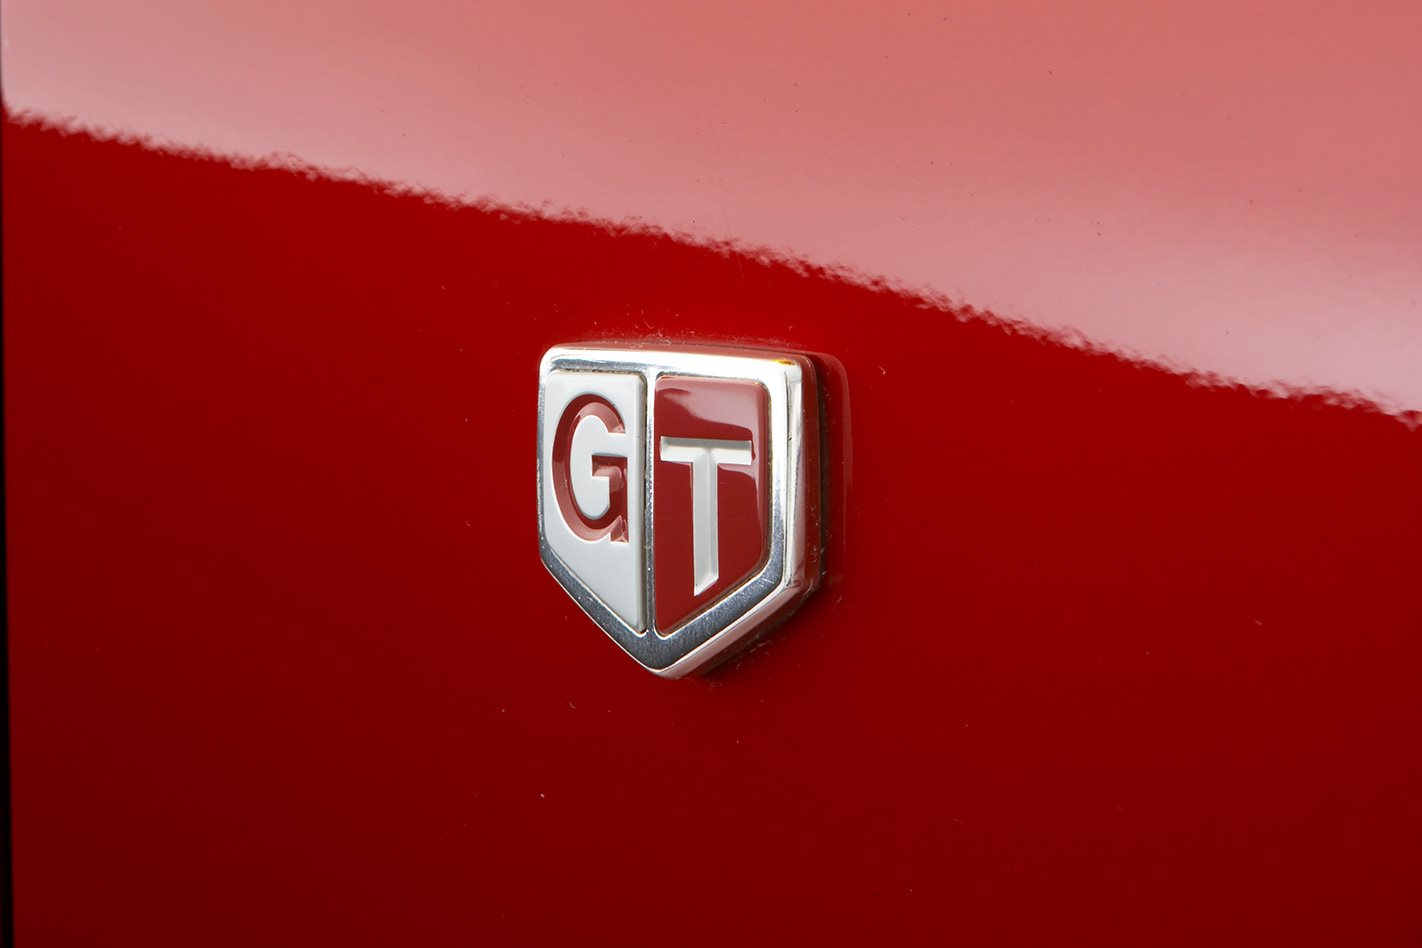 1991-Nissan-Skyline-GT-R-badge.jpg